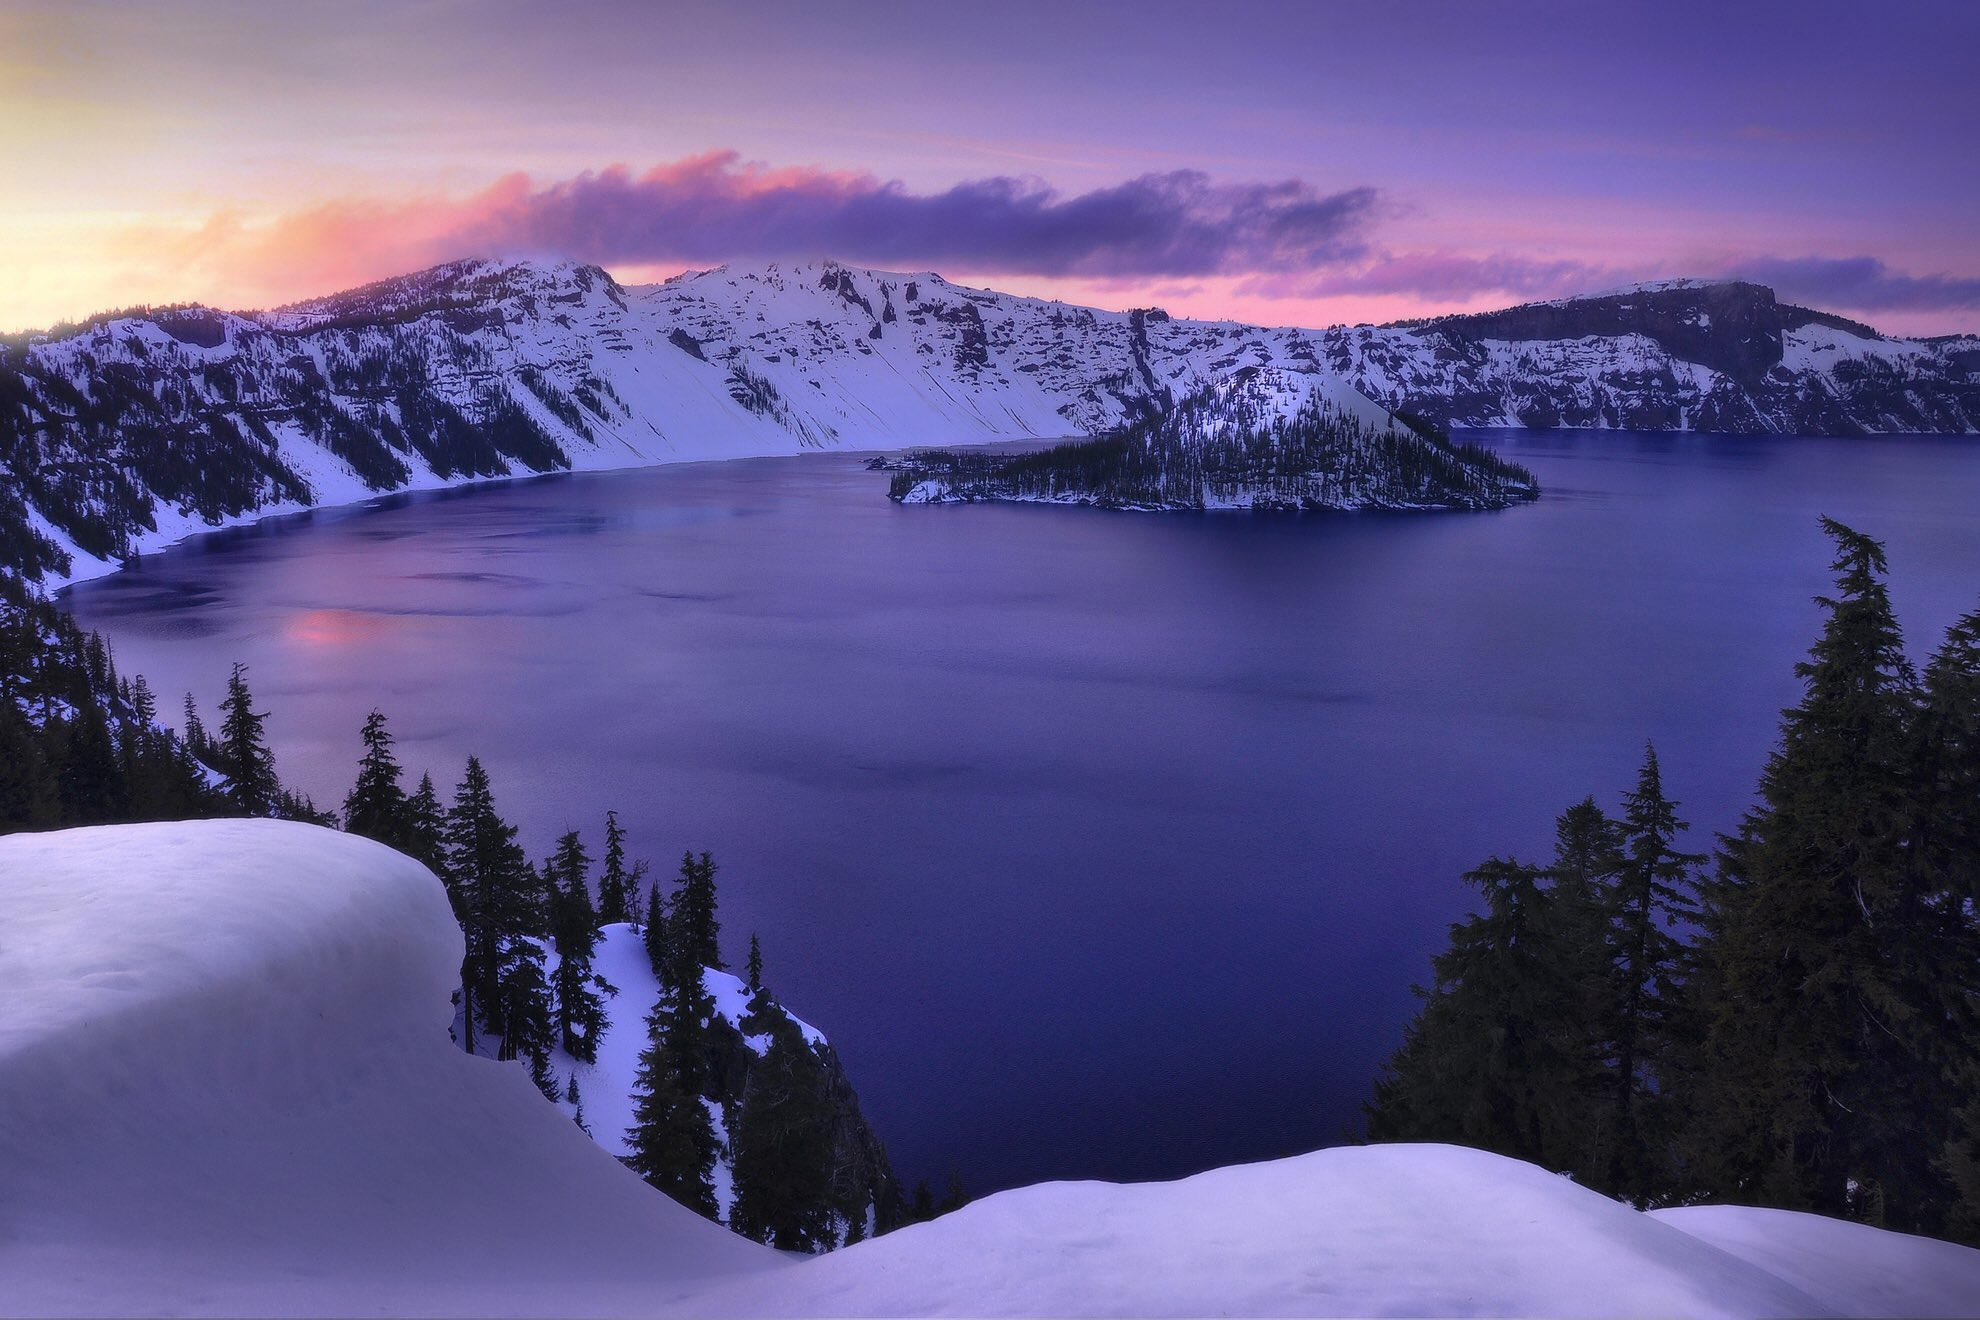 Purple sunset over a snowy crater lake